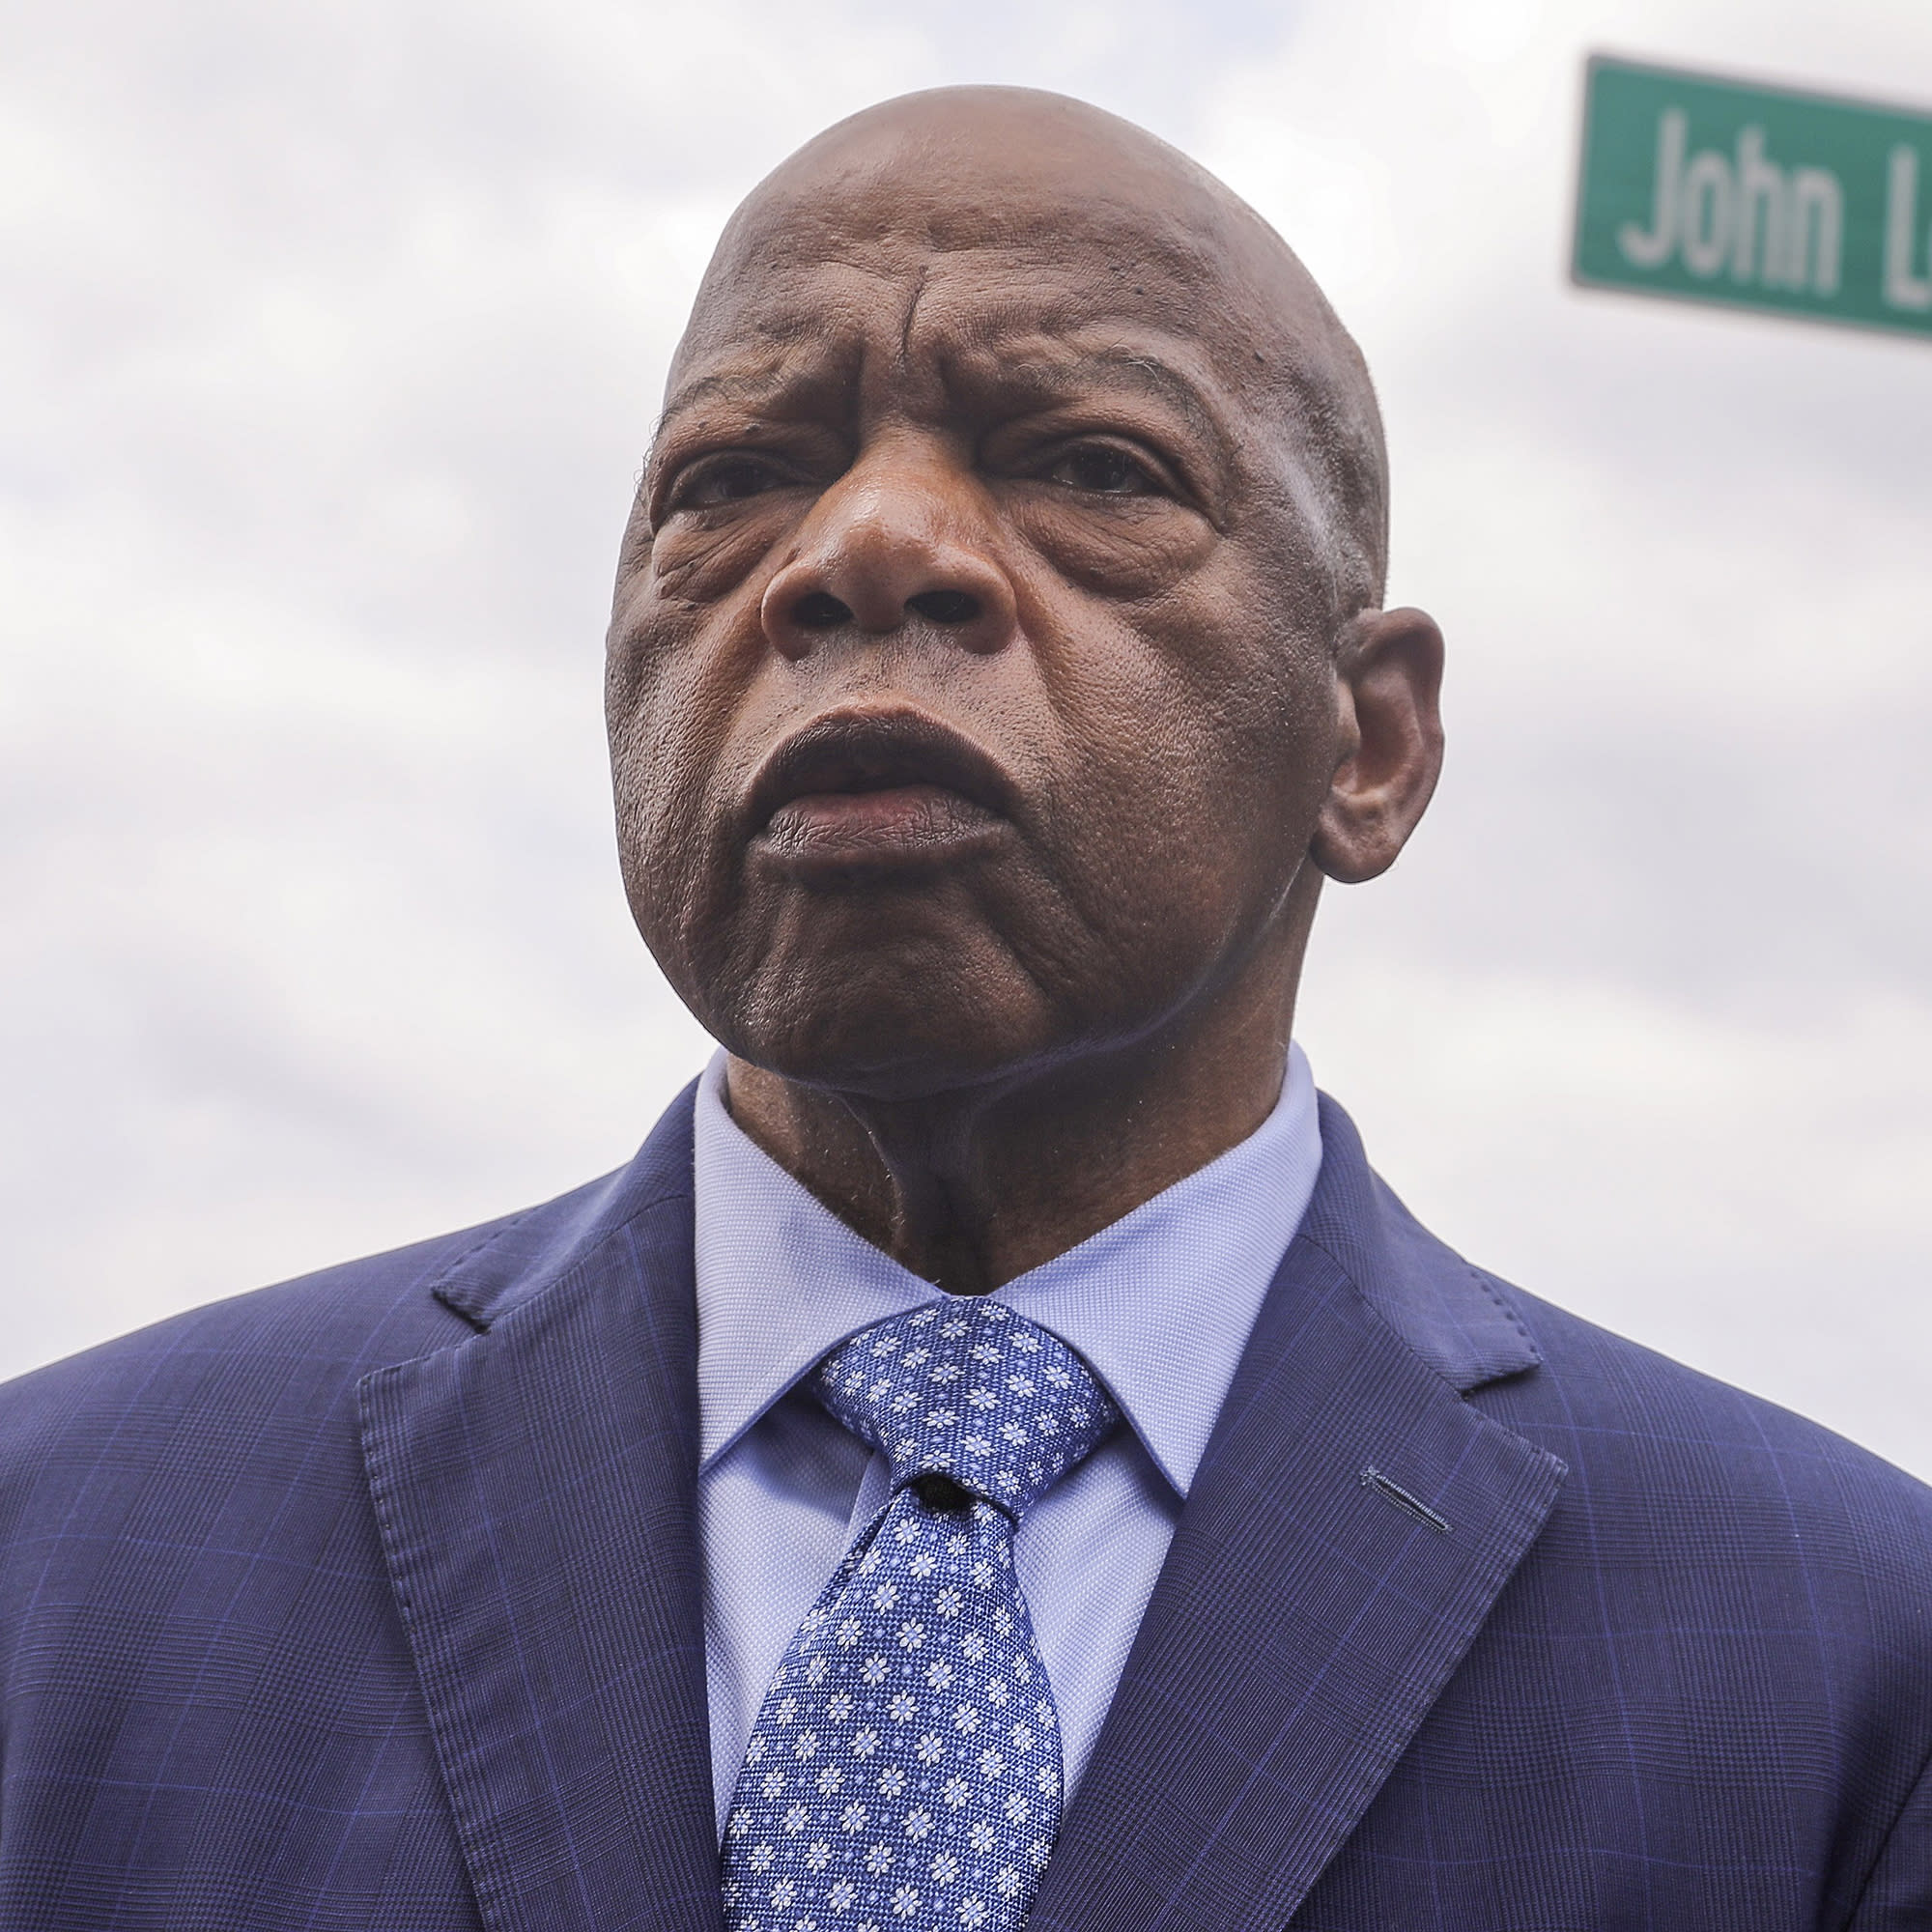 Lee High School To Be Renamed For Late Rep. John Lewis